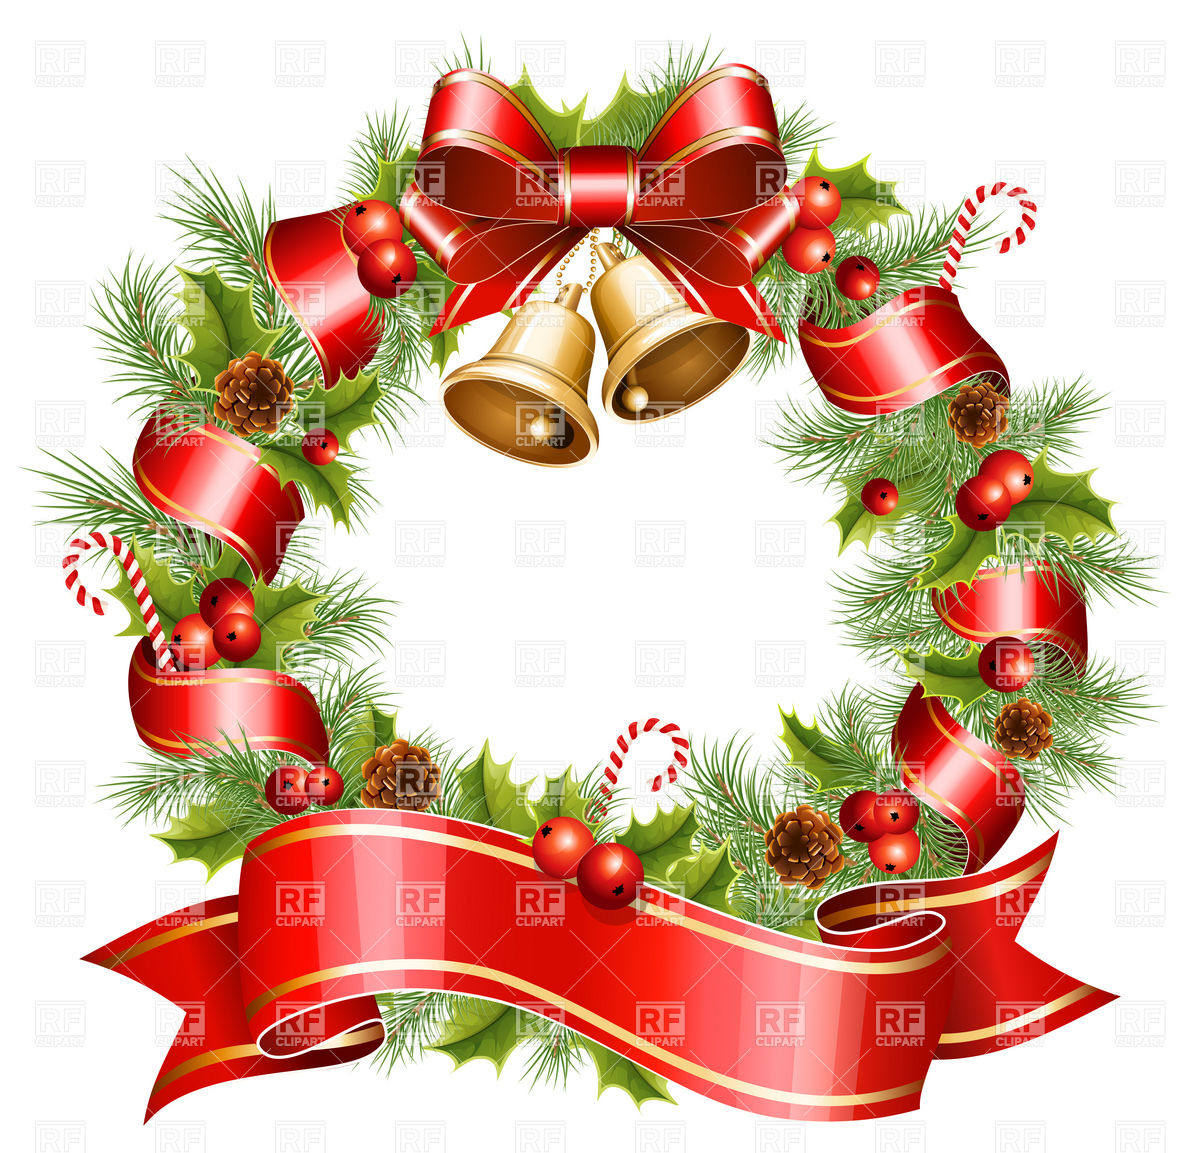 Download free christmas clipart jpg free stock Christmas clipart download - ClipartFest jpg free stock